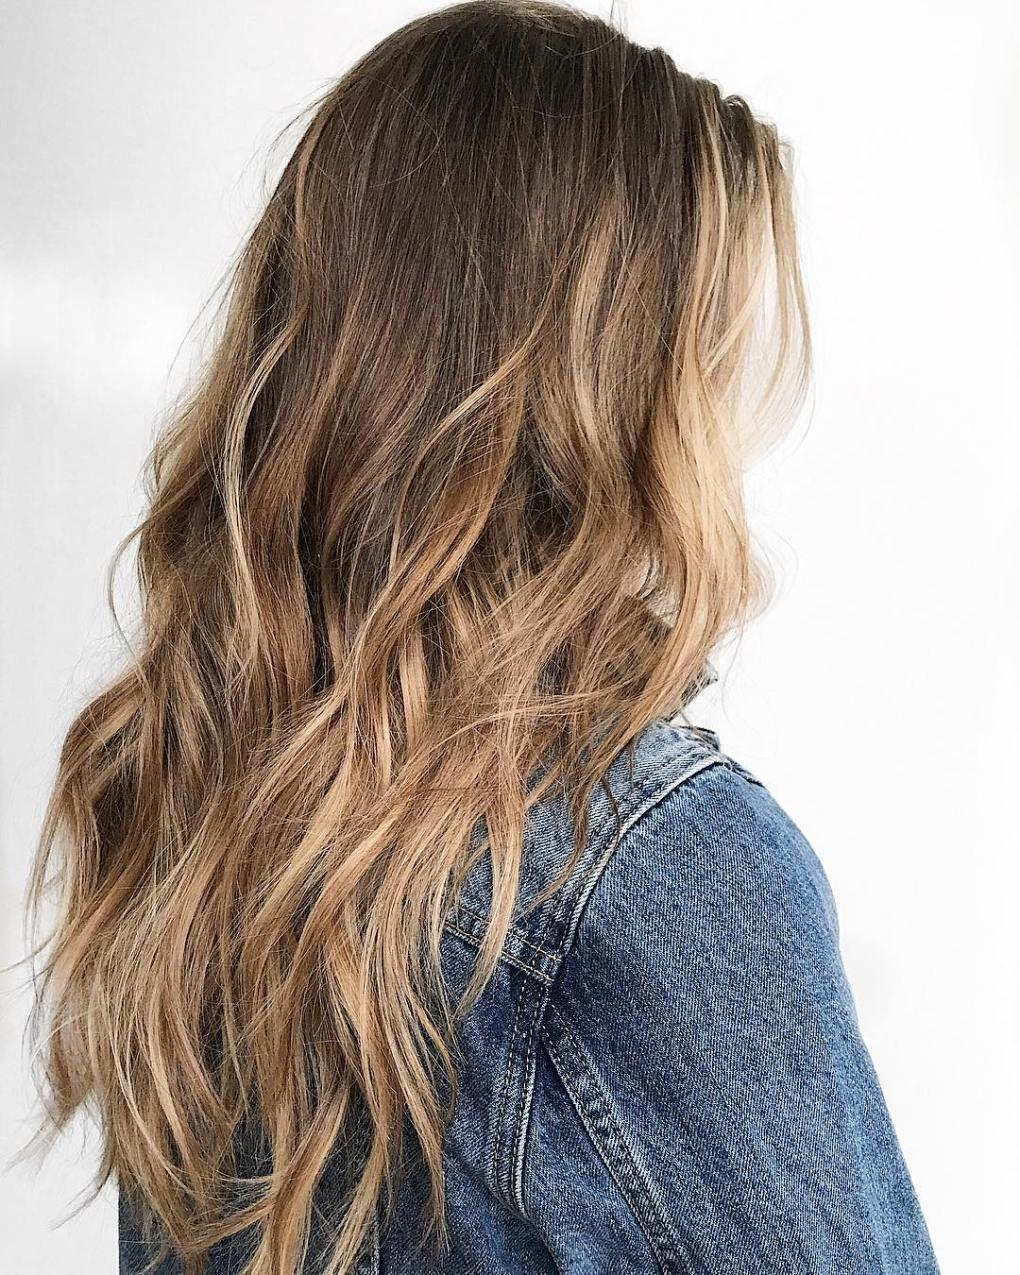 The Best 20 D*Rty Blonde Hair Ideas That Work On Everyone In 2019 Pictures